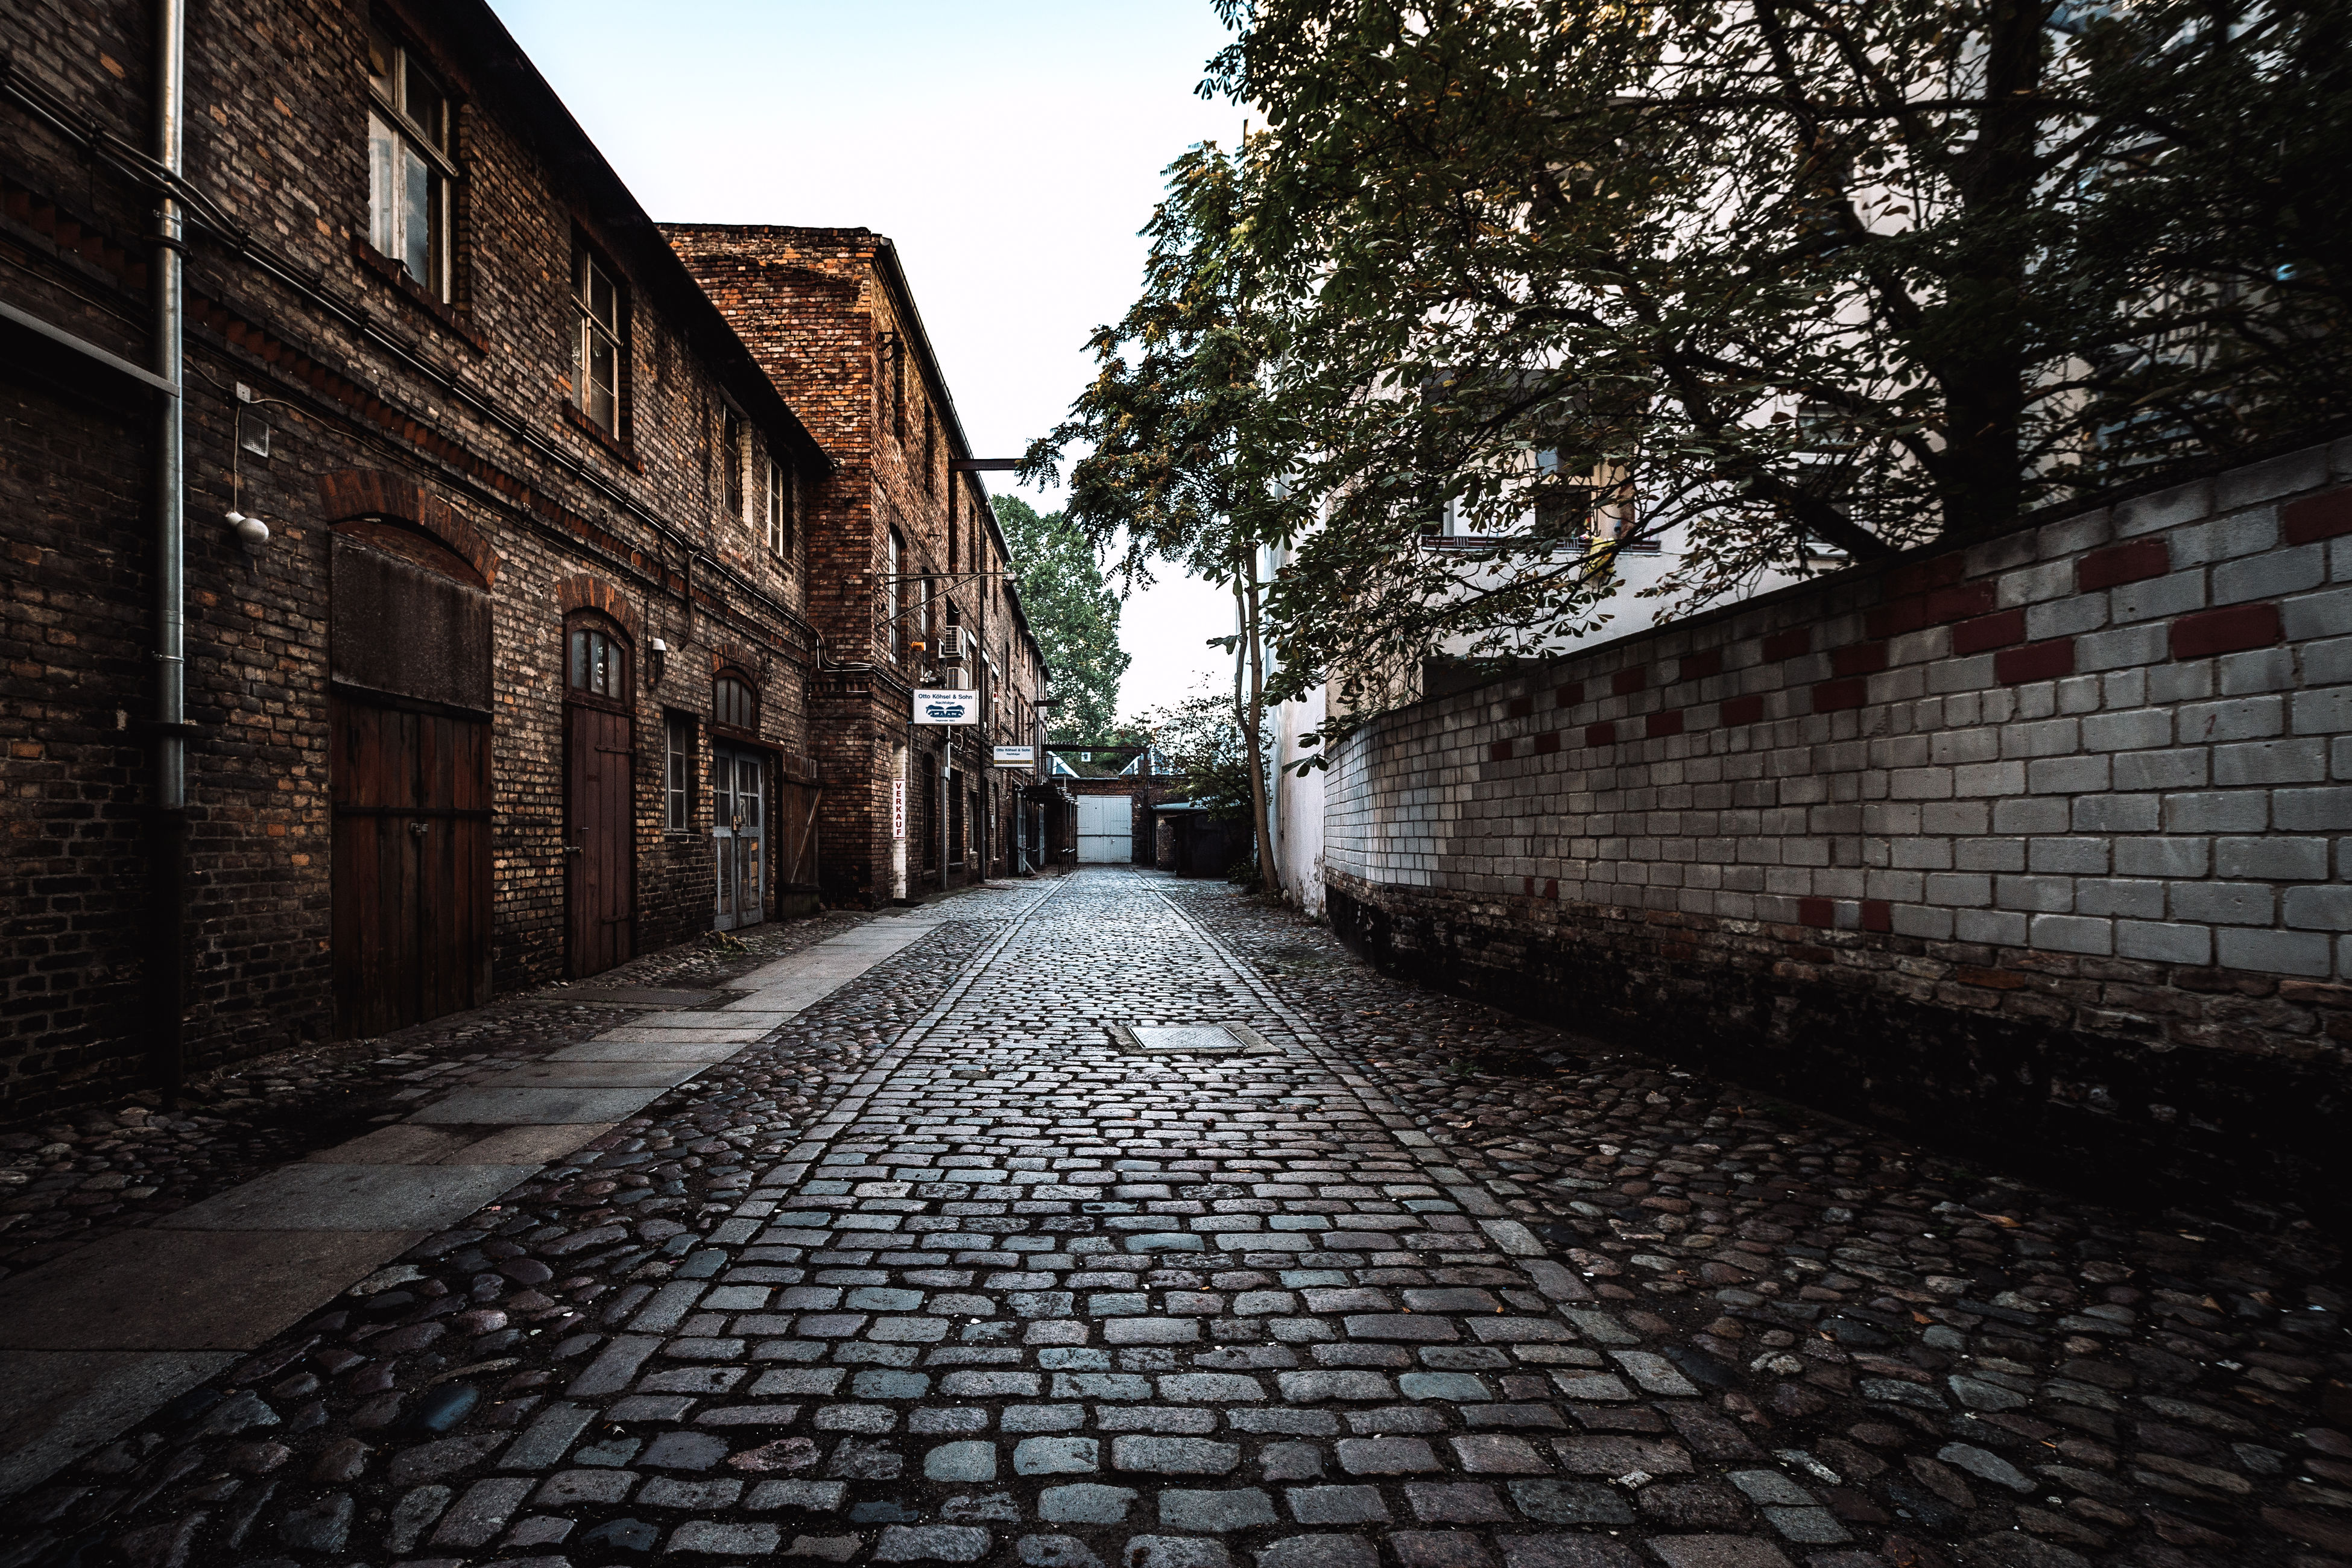 cobblestone, architecture, built structure, building exterior, street, surface level, the way forward, narrow, paving stone, day, sky, long, diminishing perspective, no people, cobble stone, cobbled